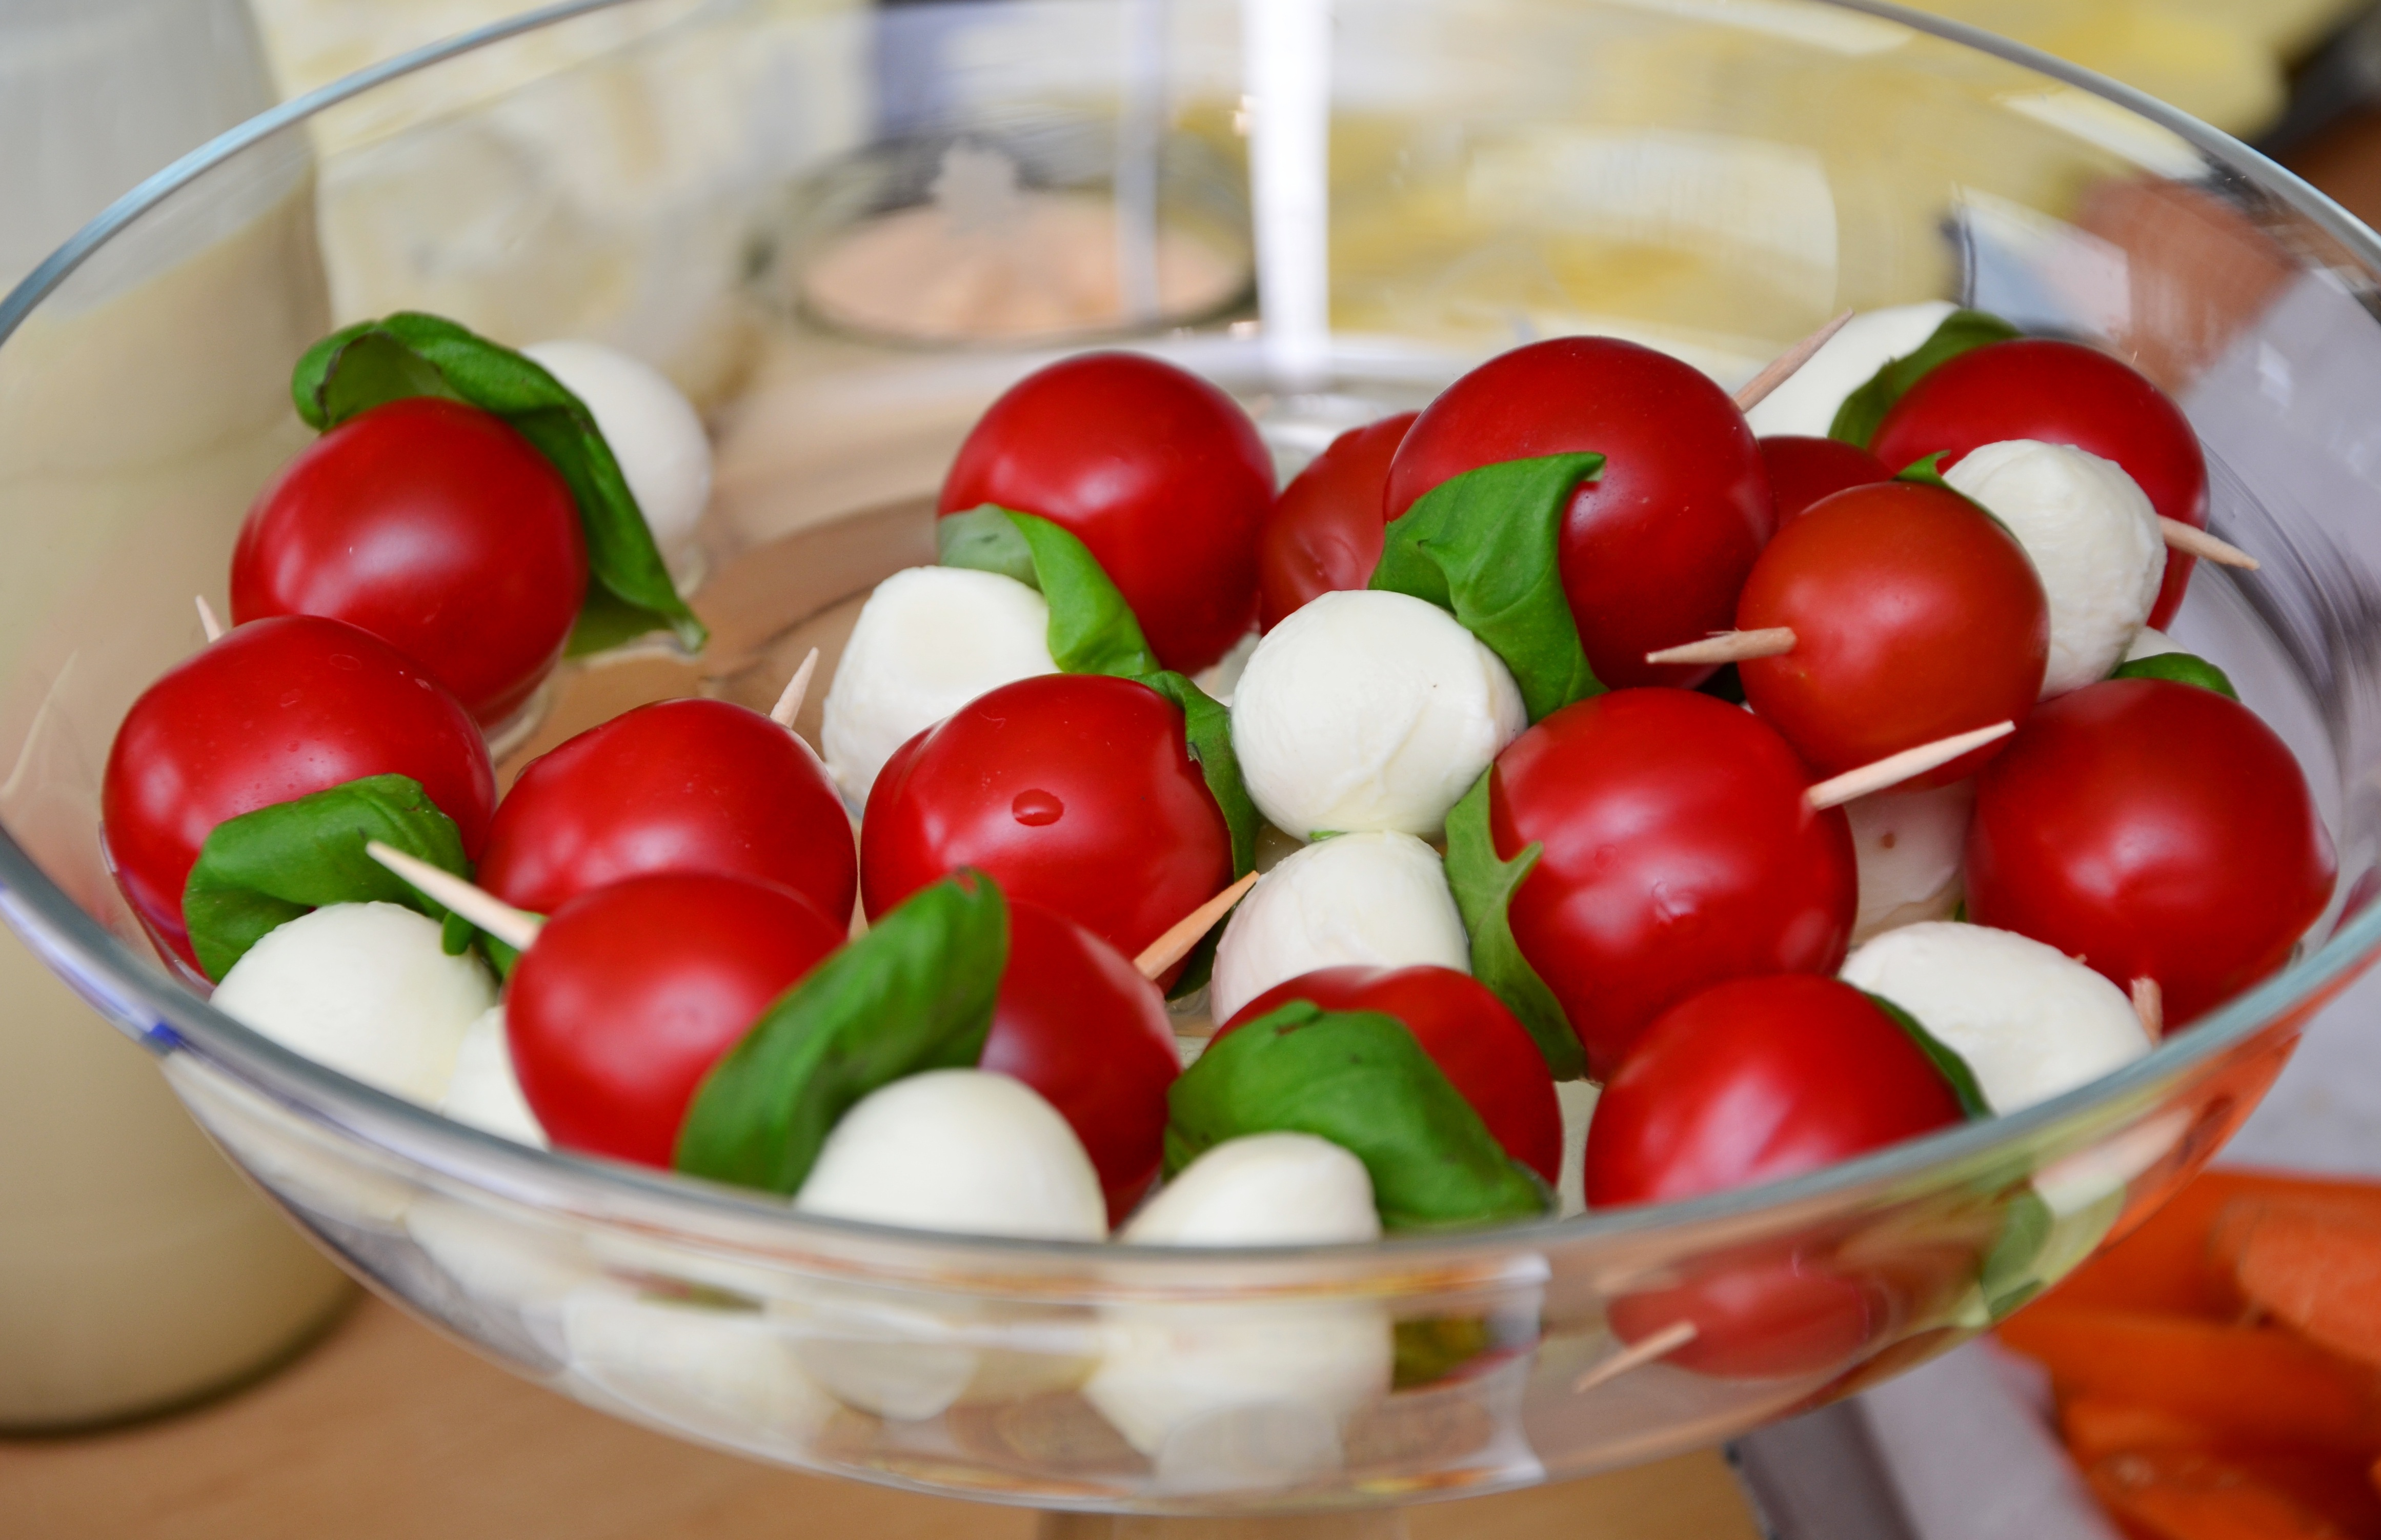 Red Round Fruit Served on Clear Glass Bowl